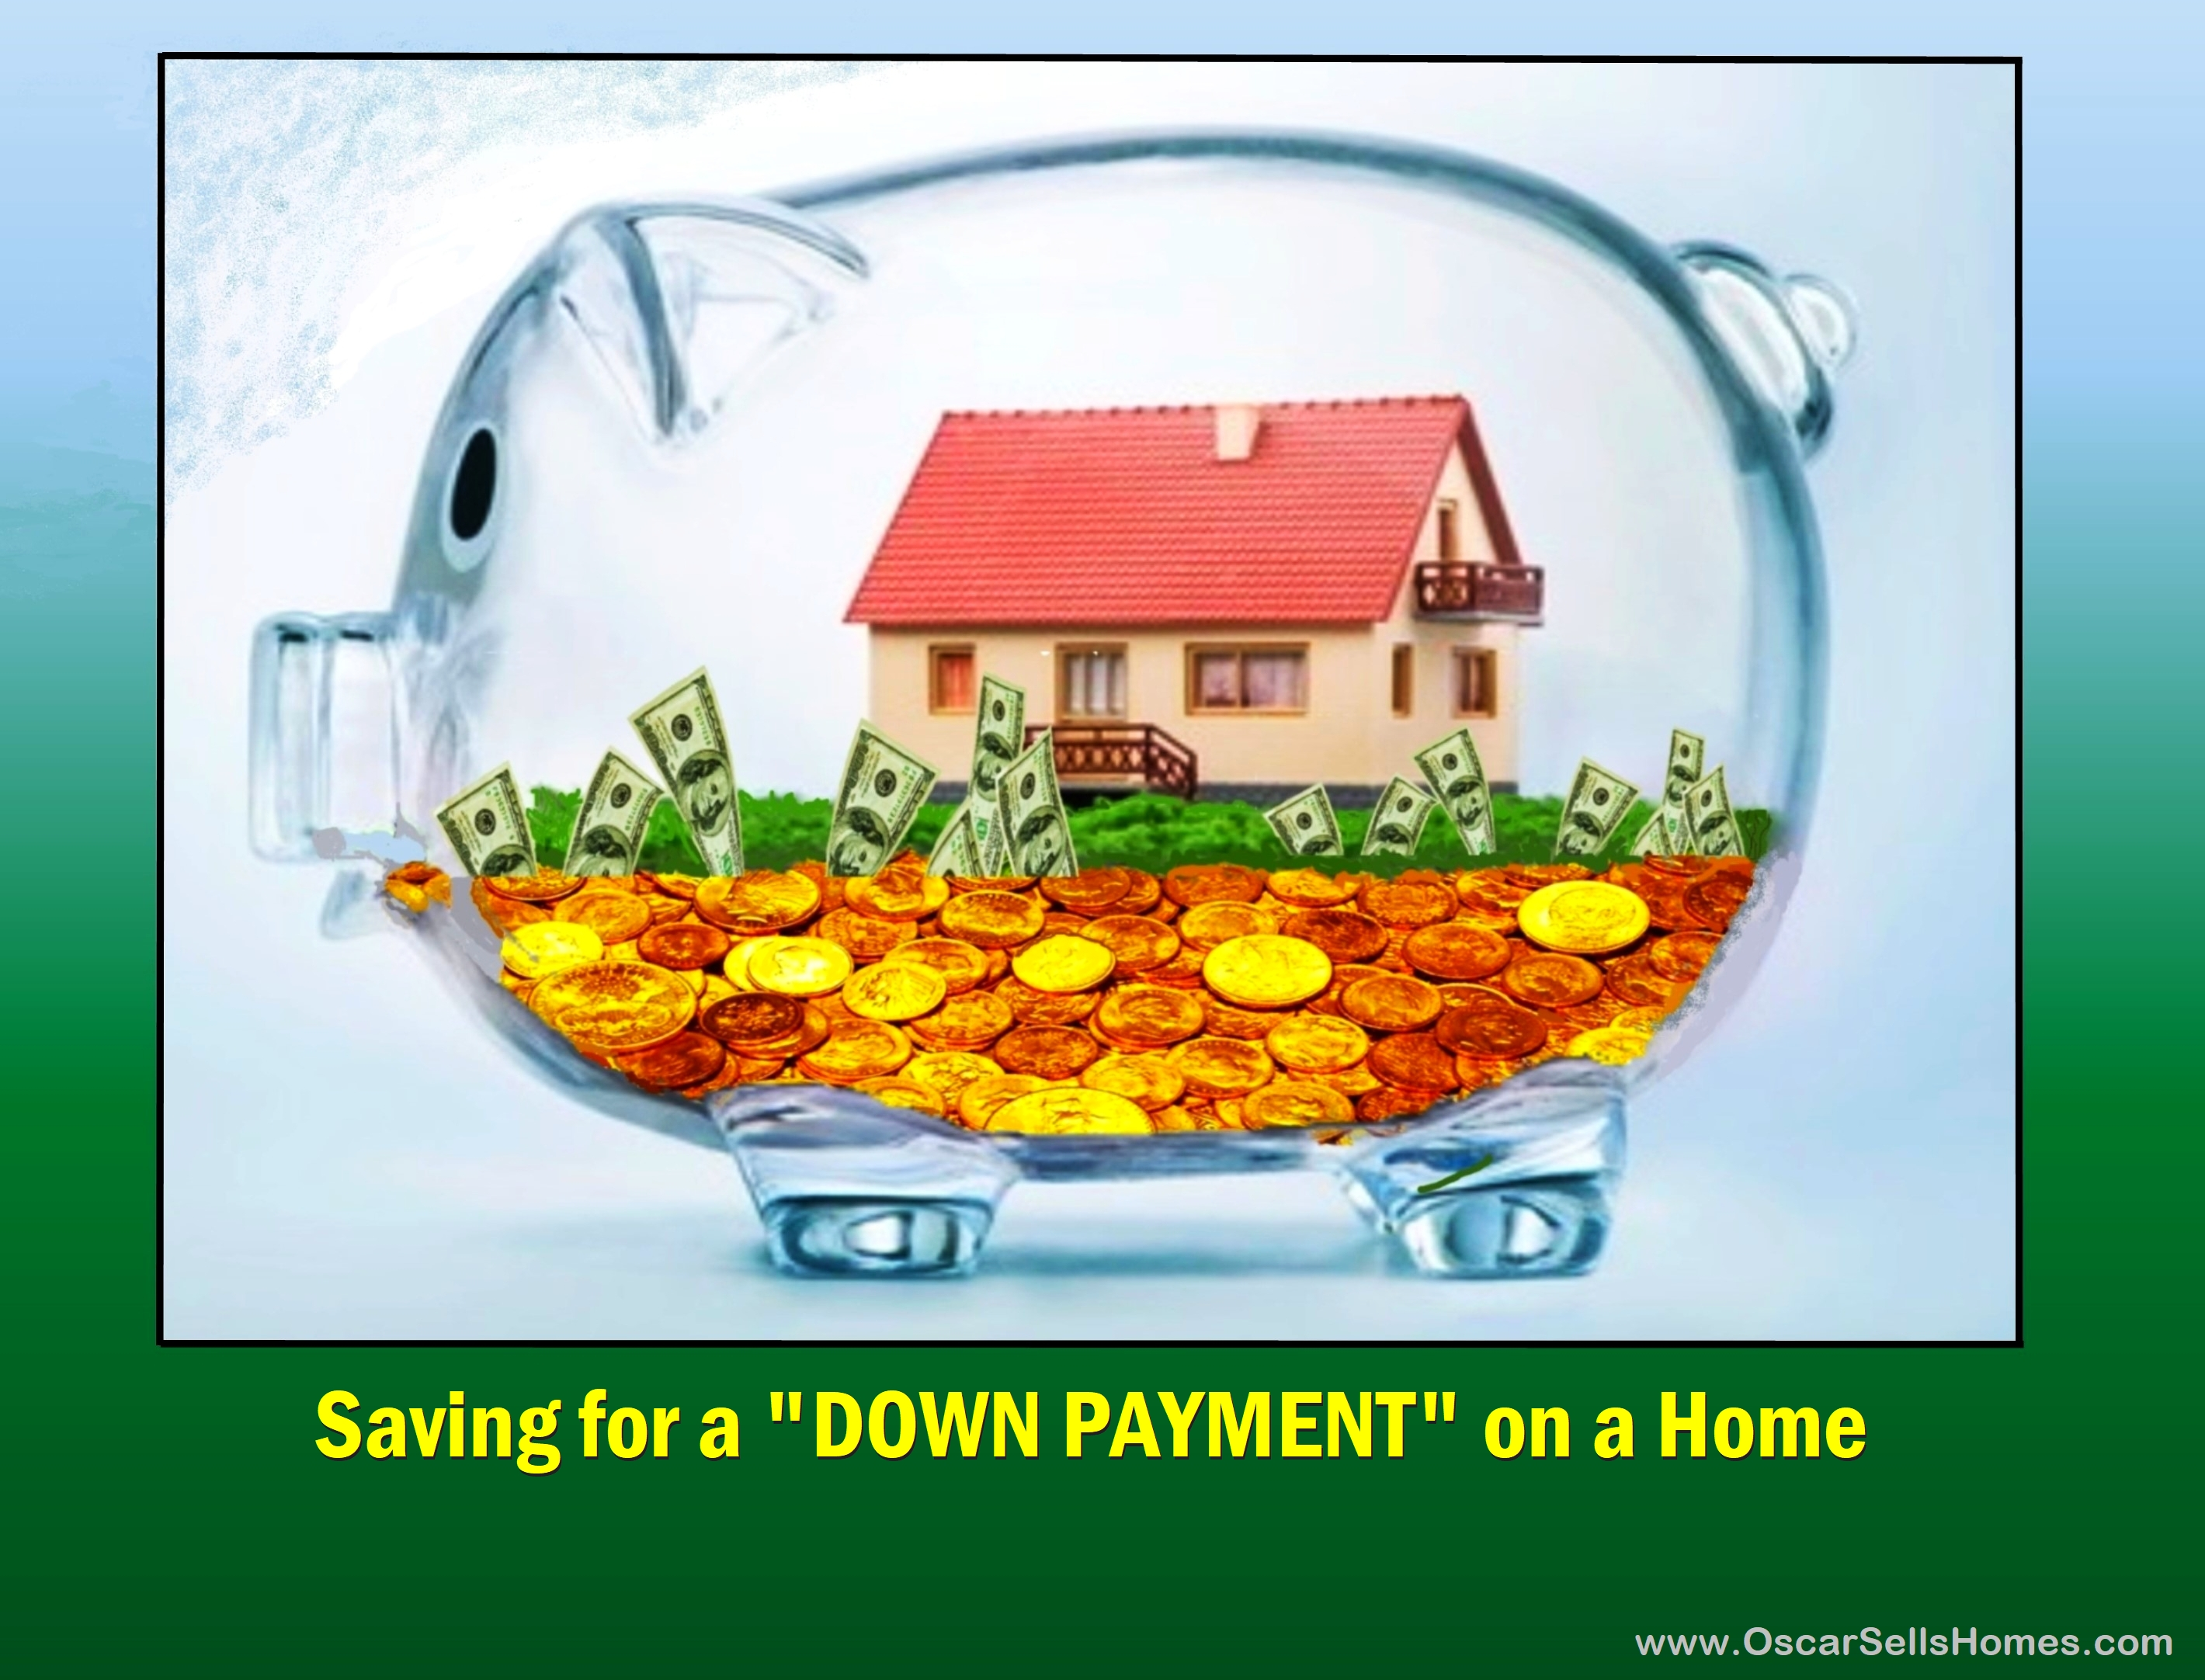 Saving for DOWN PAYMENT on a Home